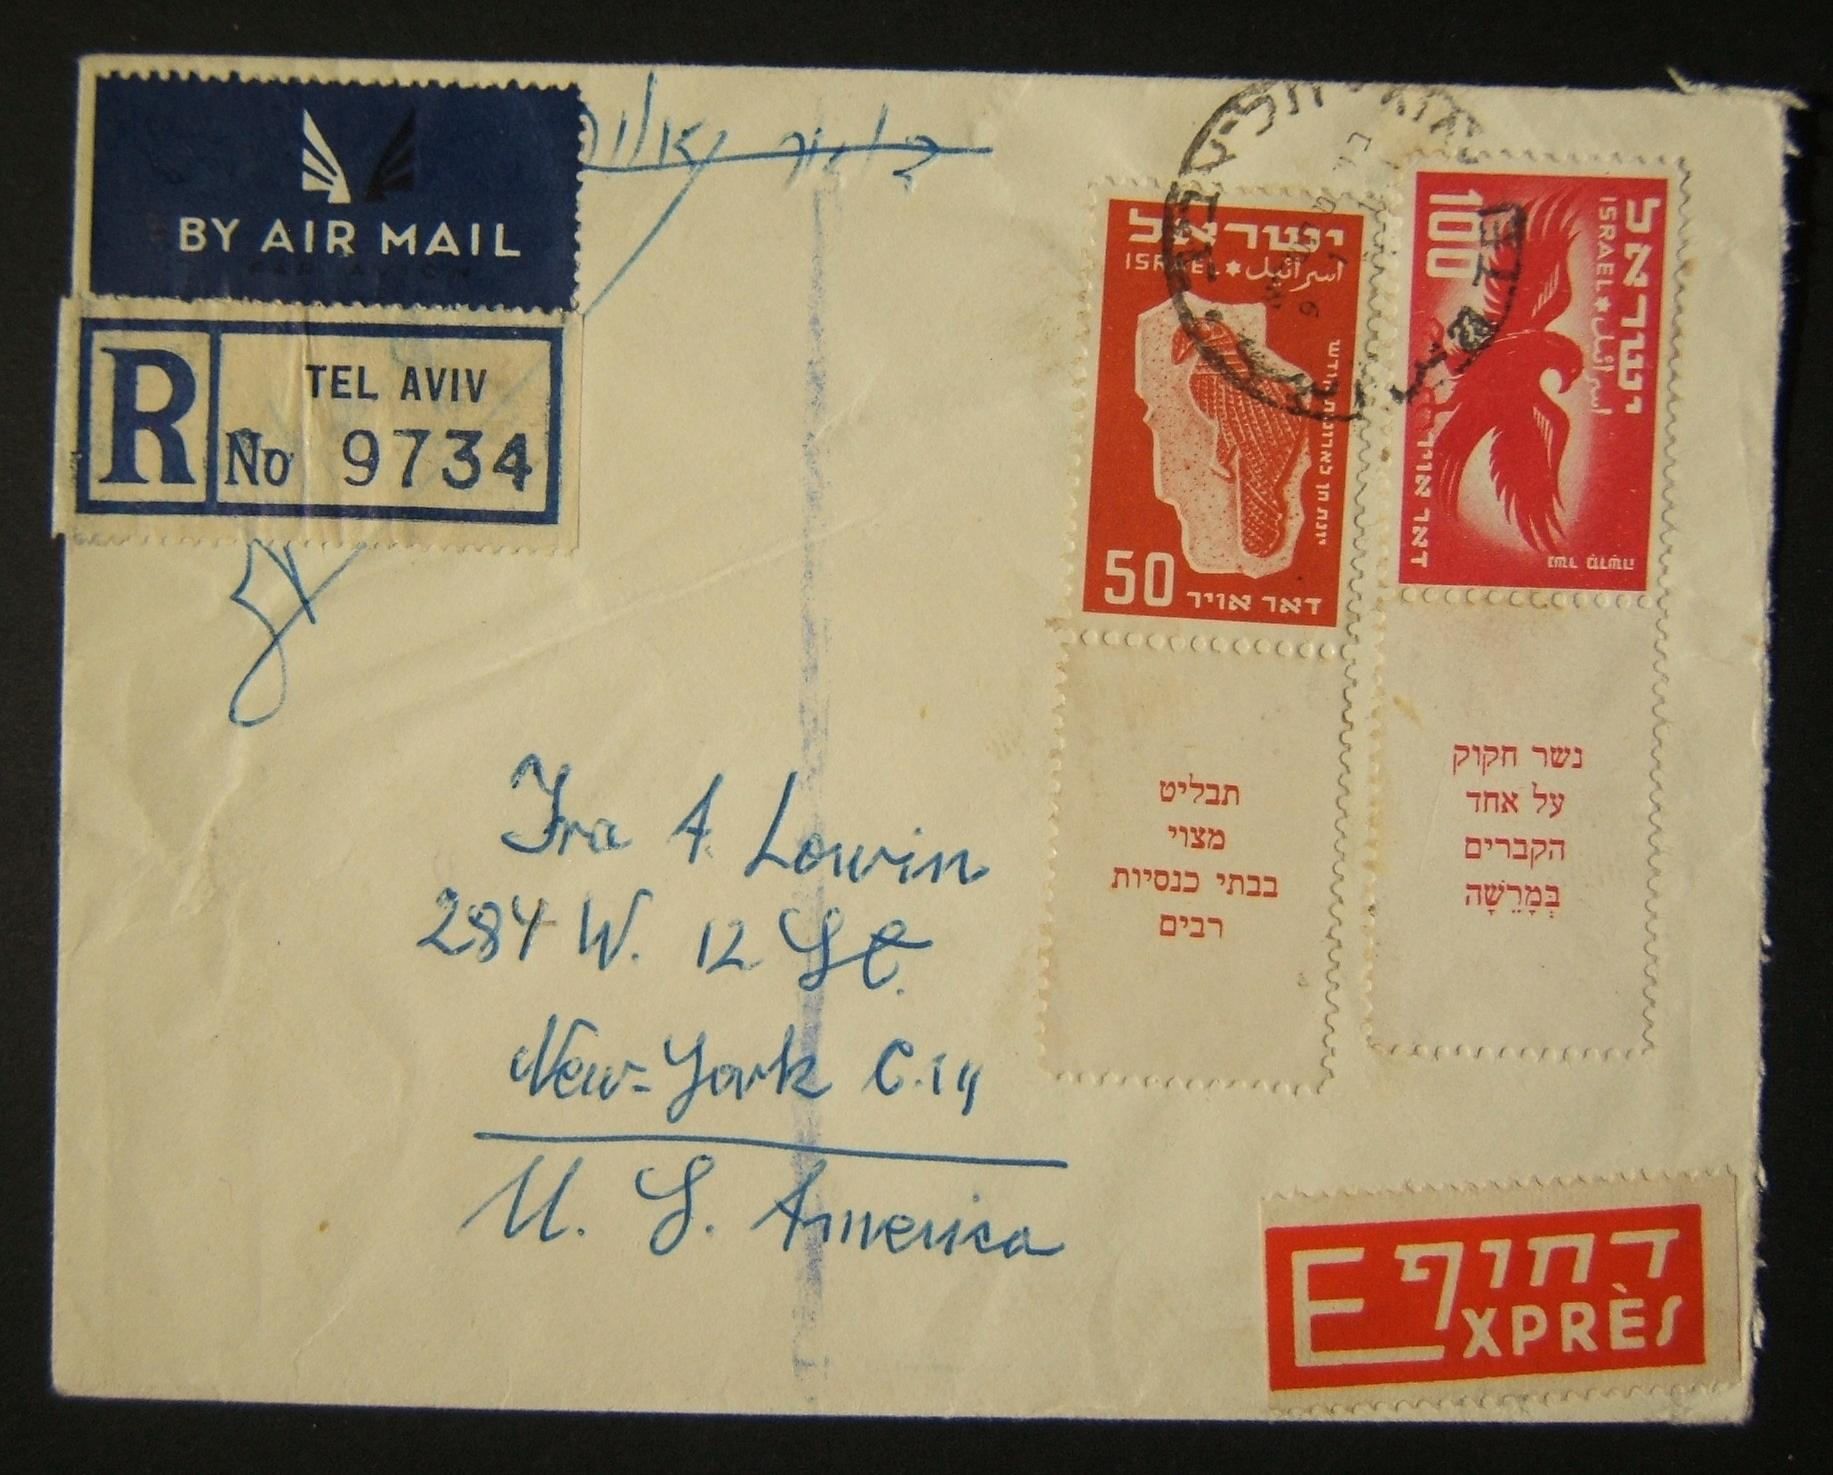 1/1951 express airmail to US using half-tabbed 50pr & 100pr 1st Airmail stamps